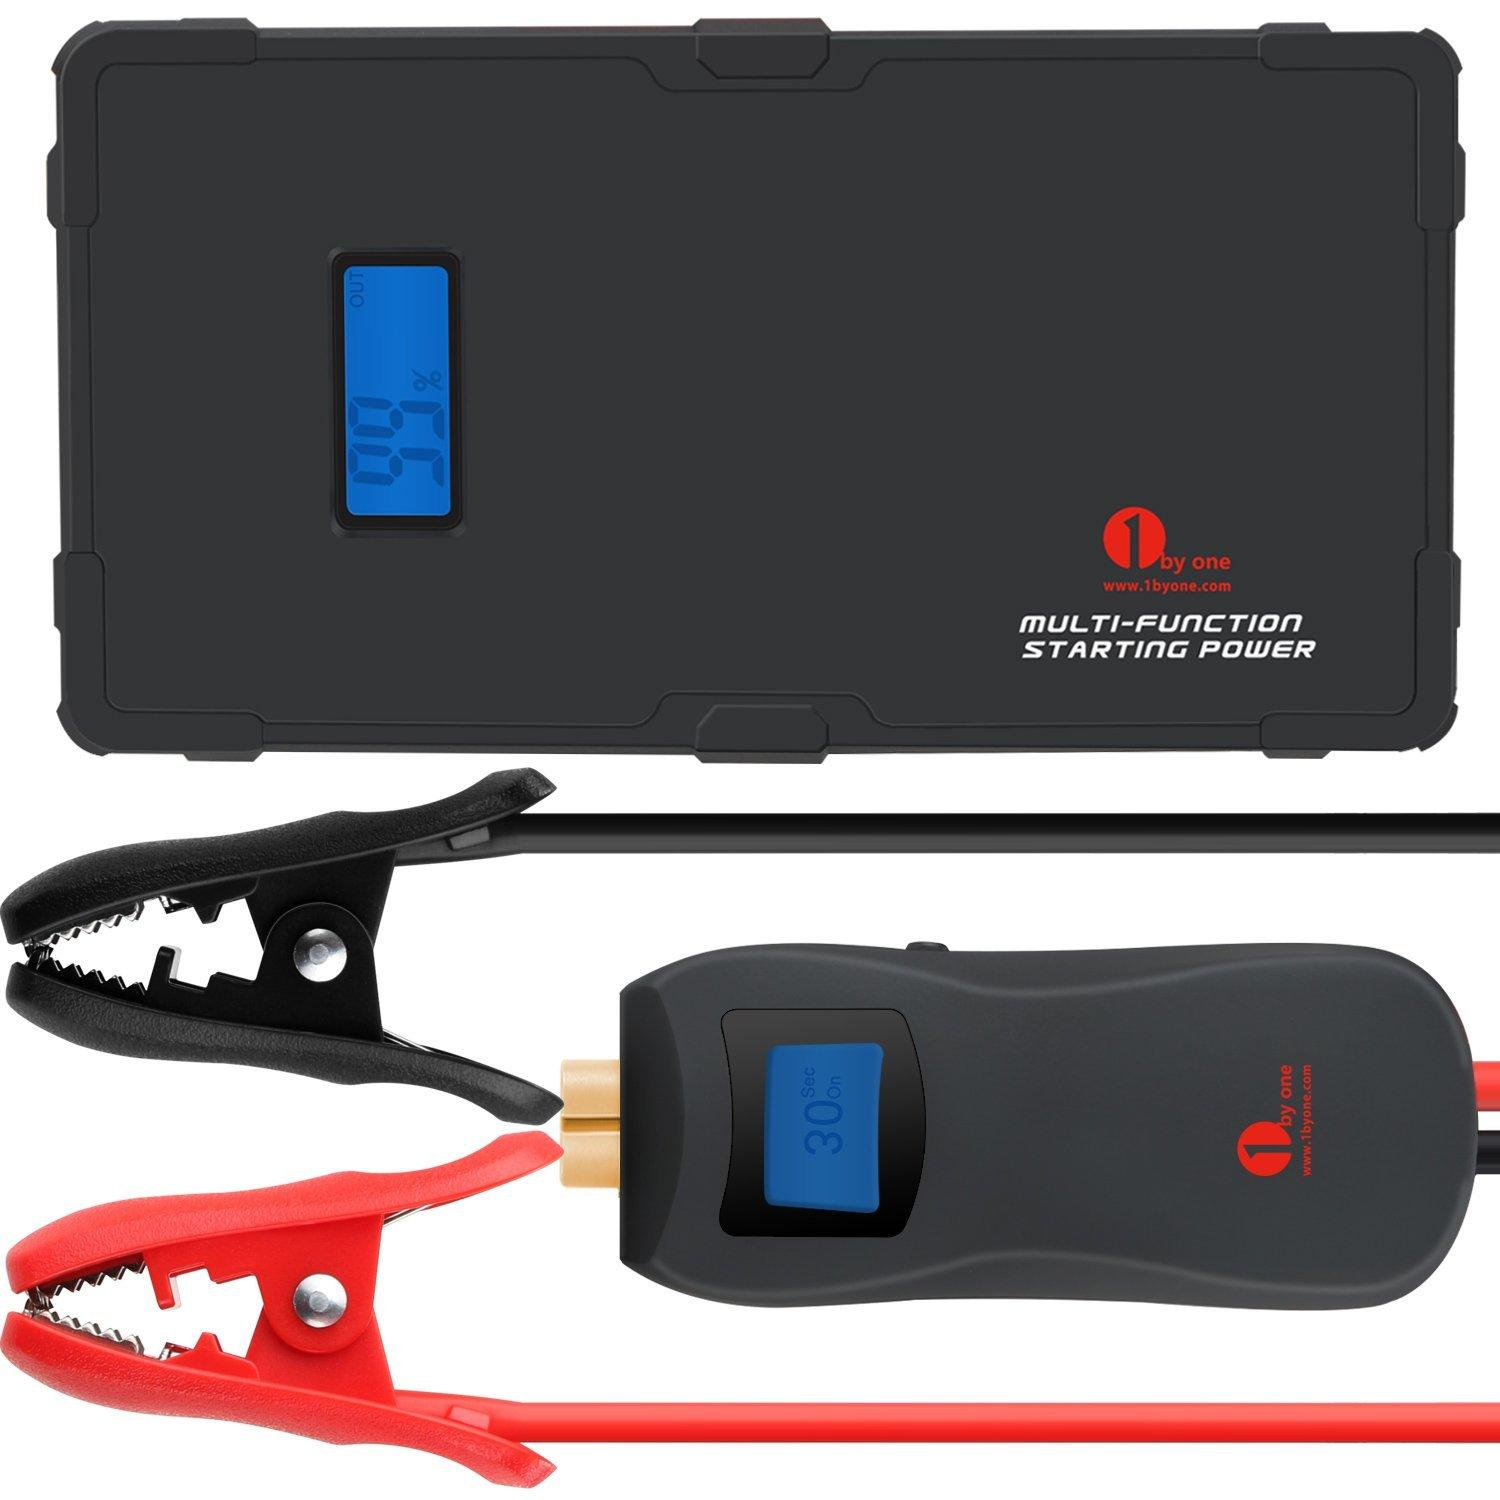 1byone 9000mAh 12V Multi-Function Smart Portable Car Jump Starter Powerbank